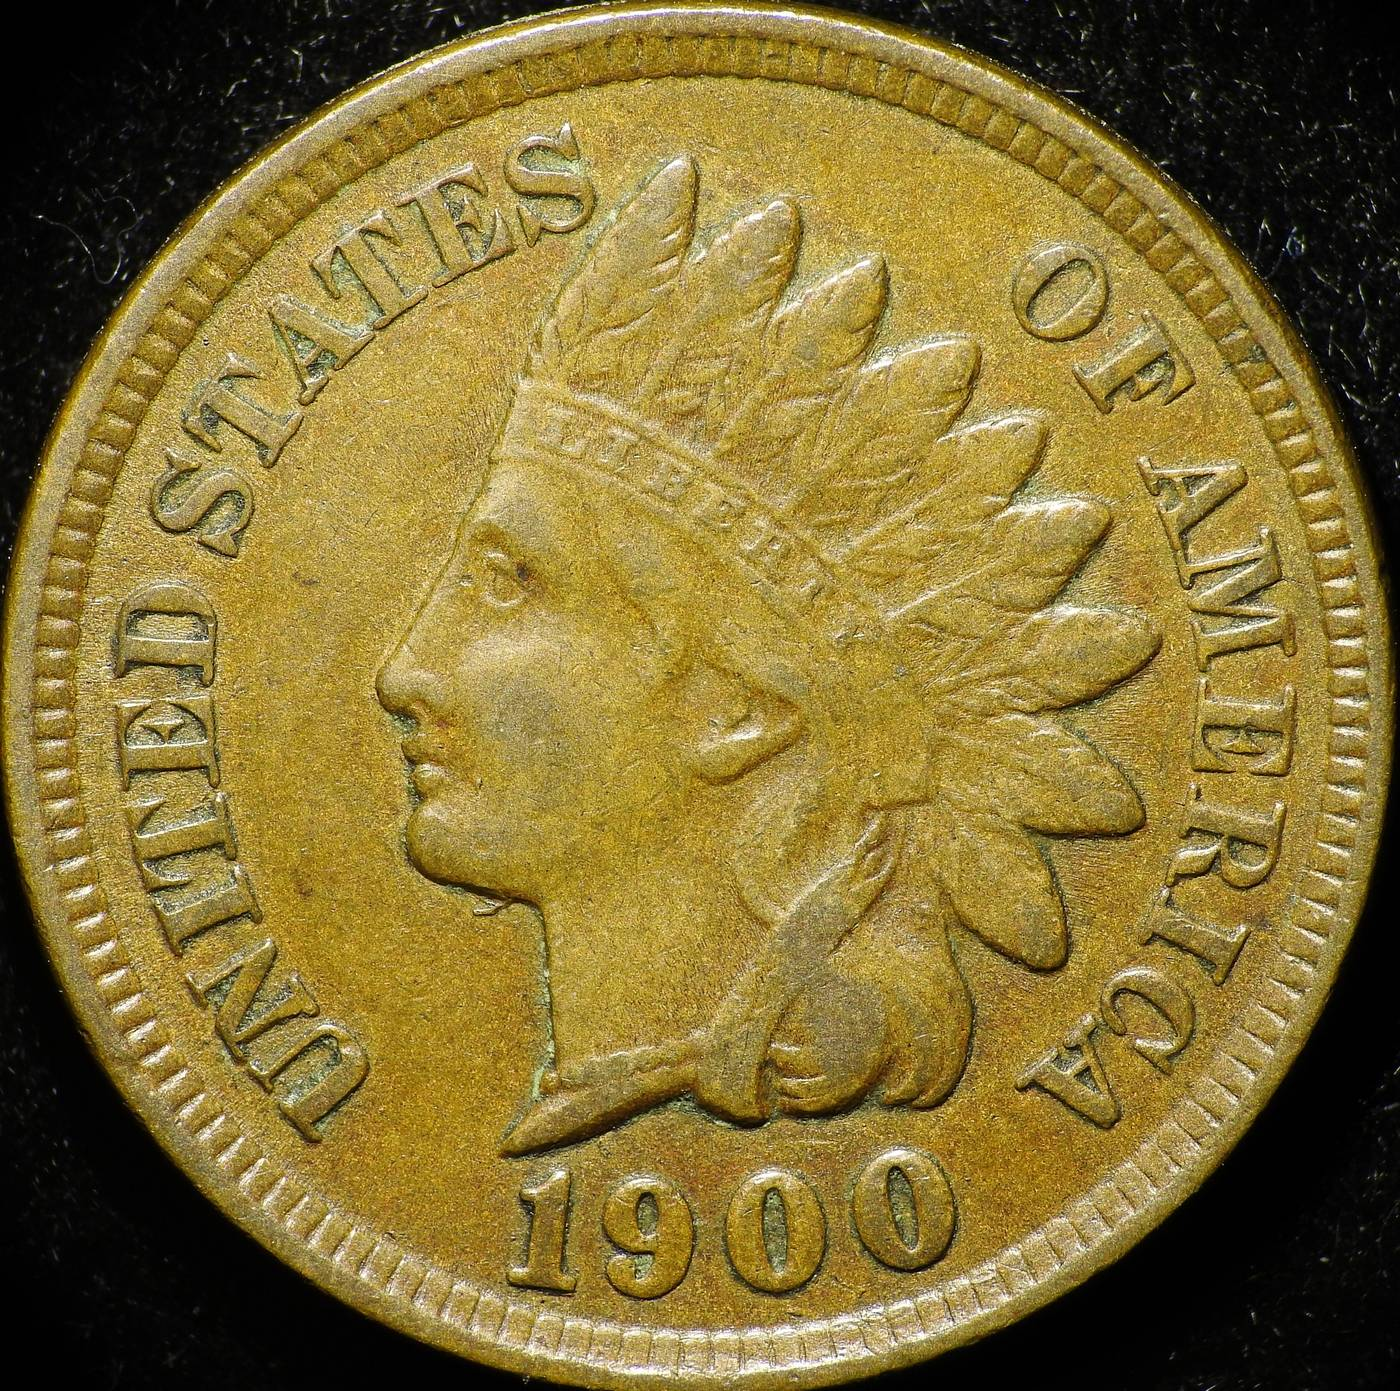 1900 ODD-001, RPD-012 - Indian Head Penny